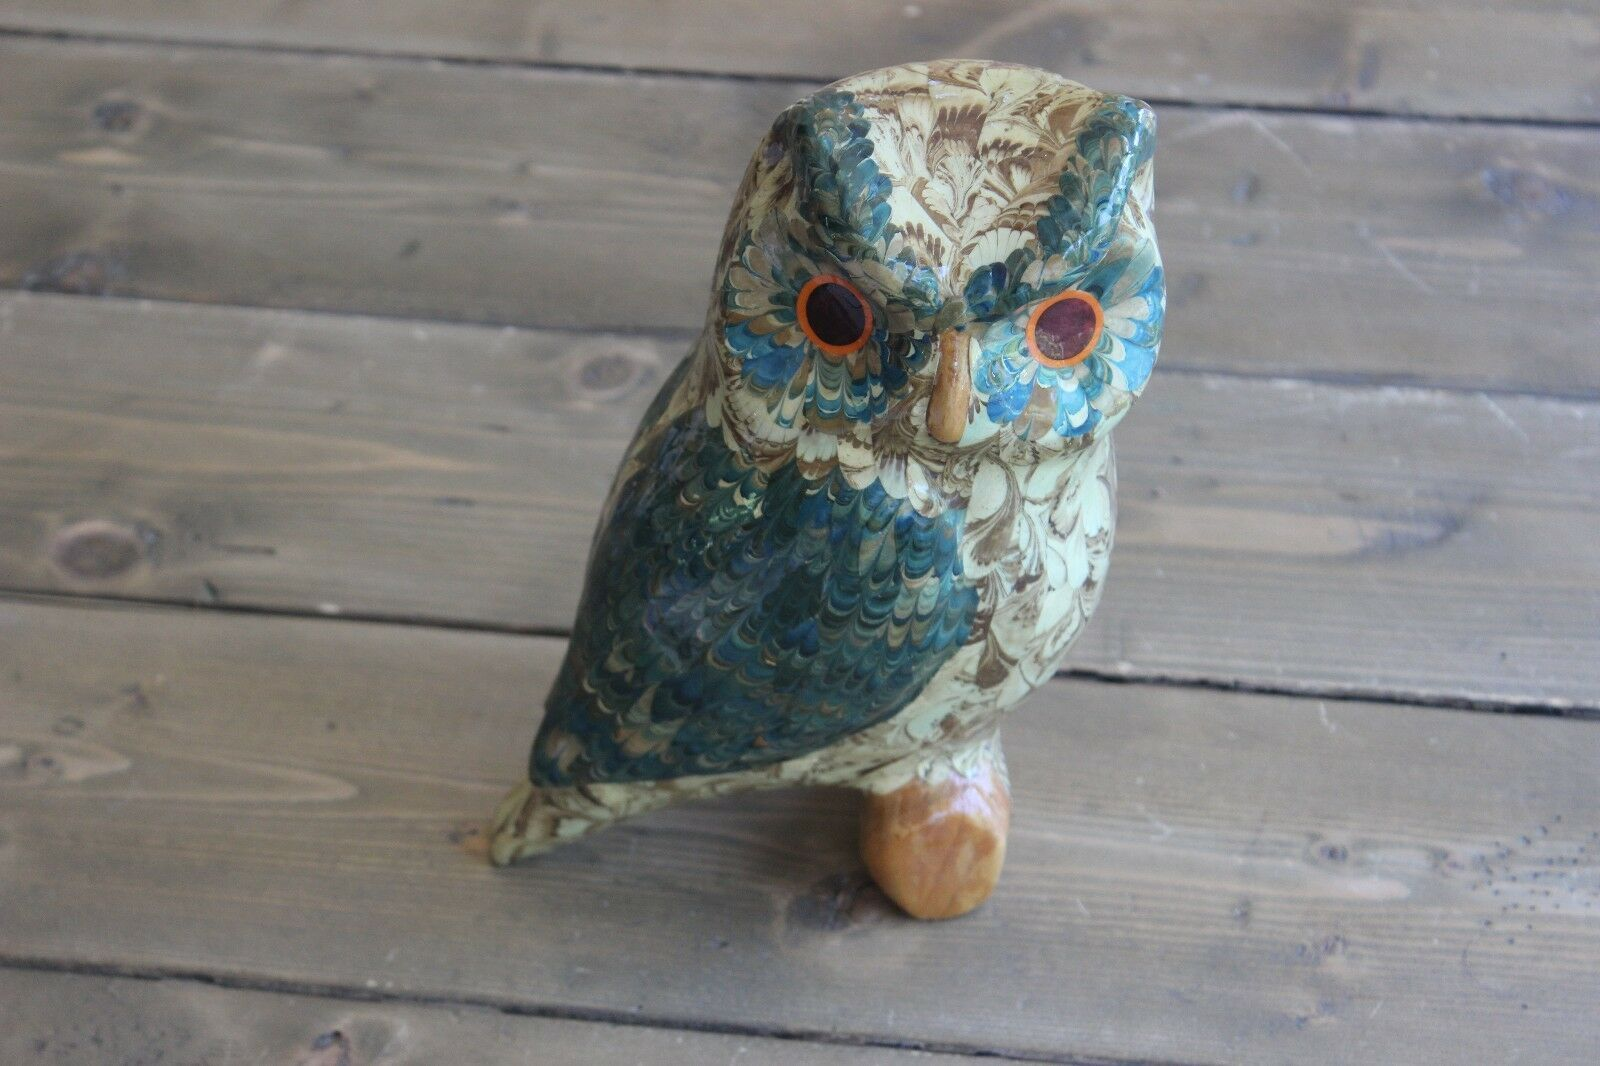 Home Decor Owl Figure Signed DS image 1